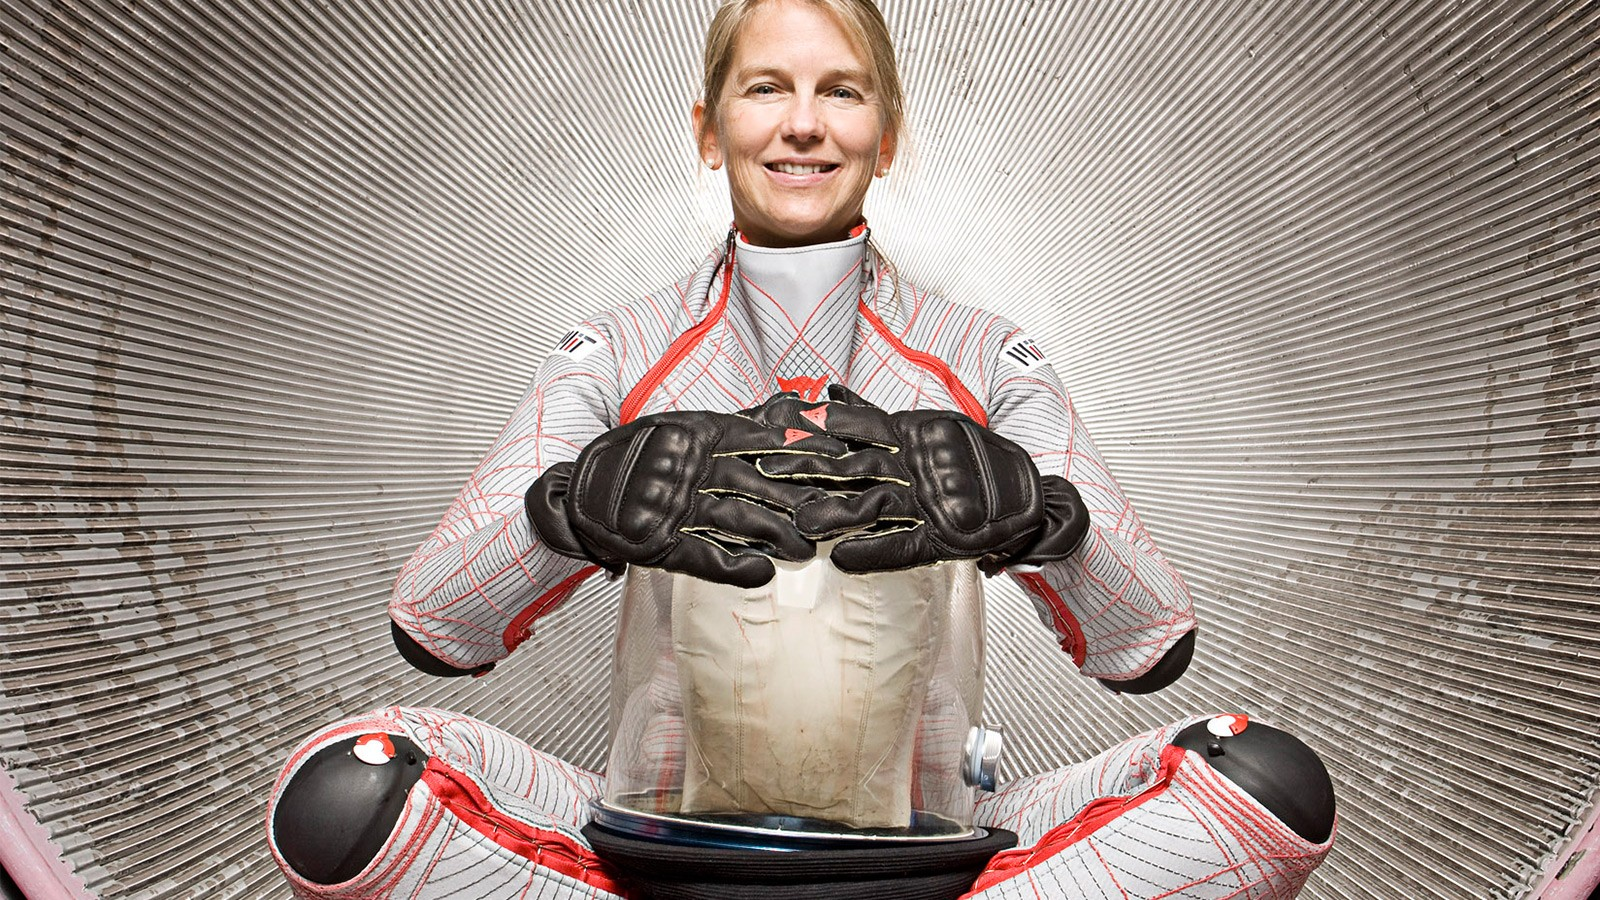 Dainese Creates Two Space Suits for Mars Missions ...